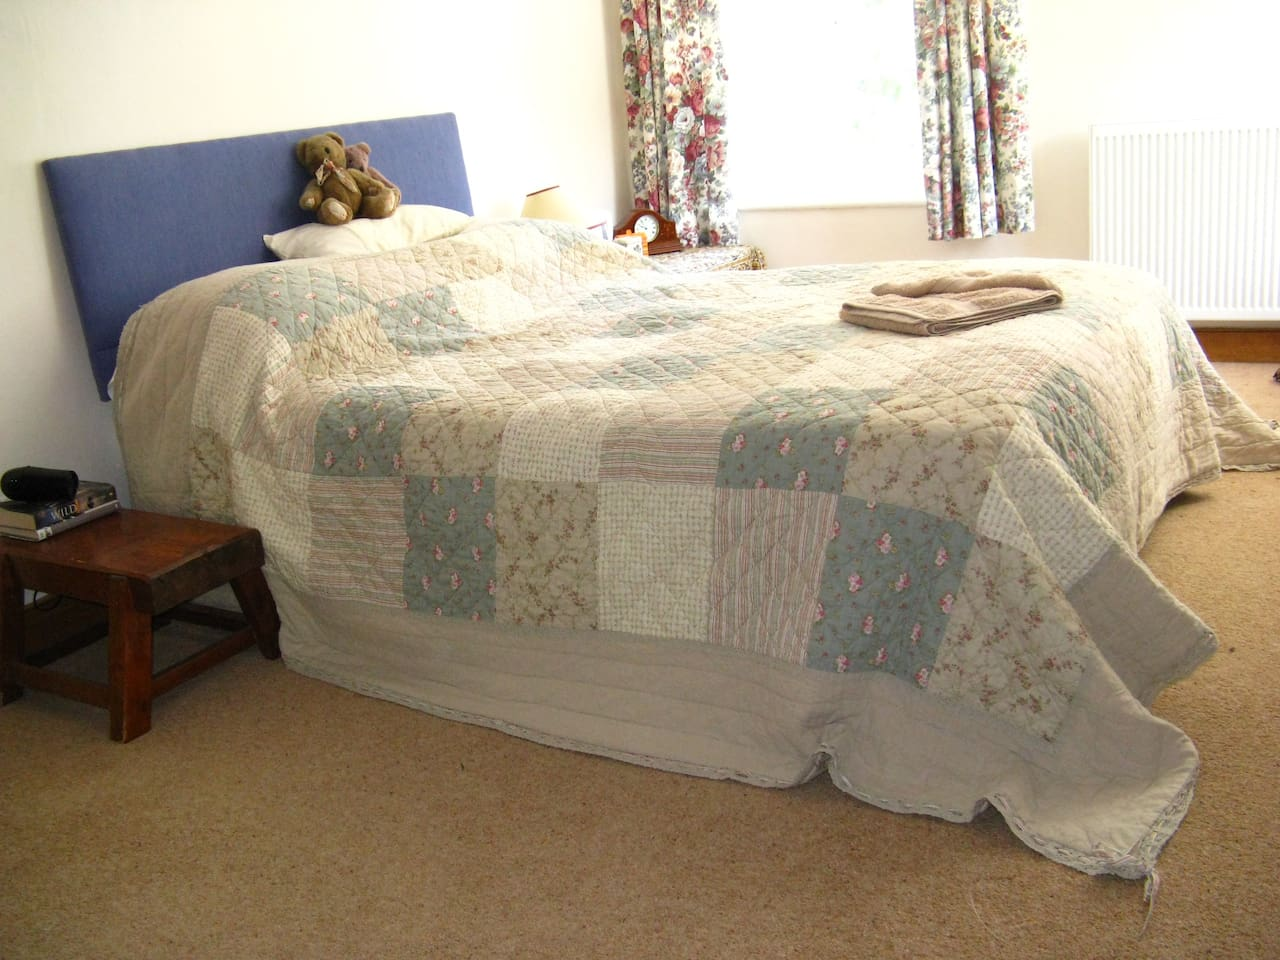 Lake District - Bed in Borrowdale